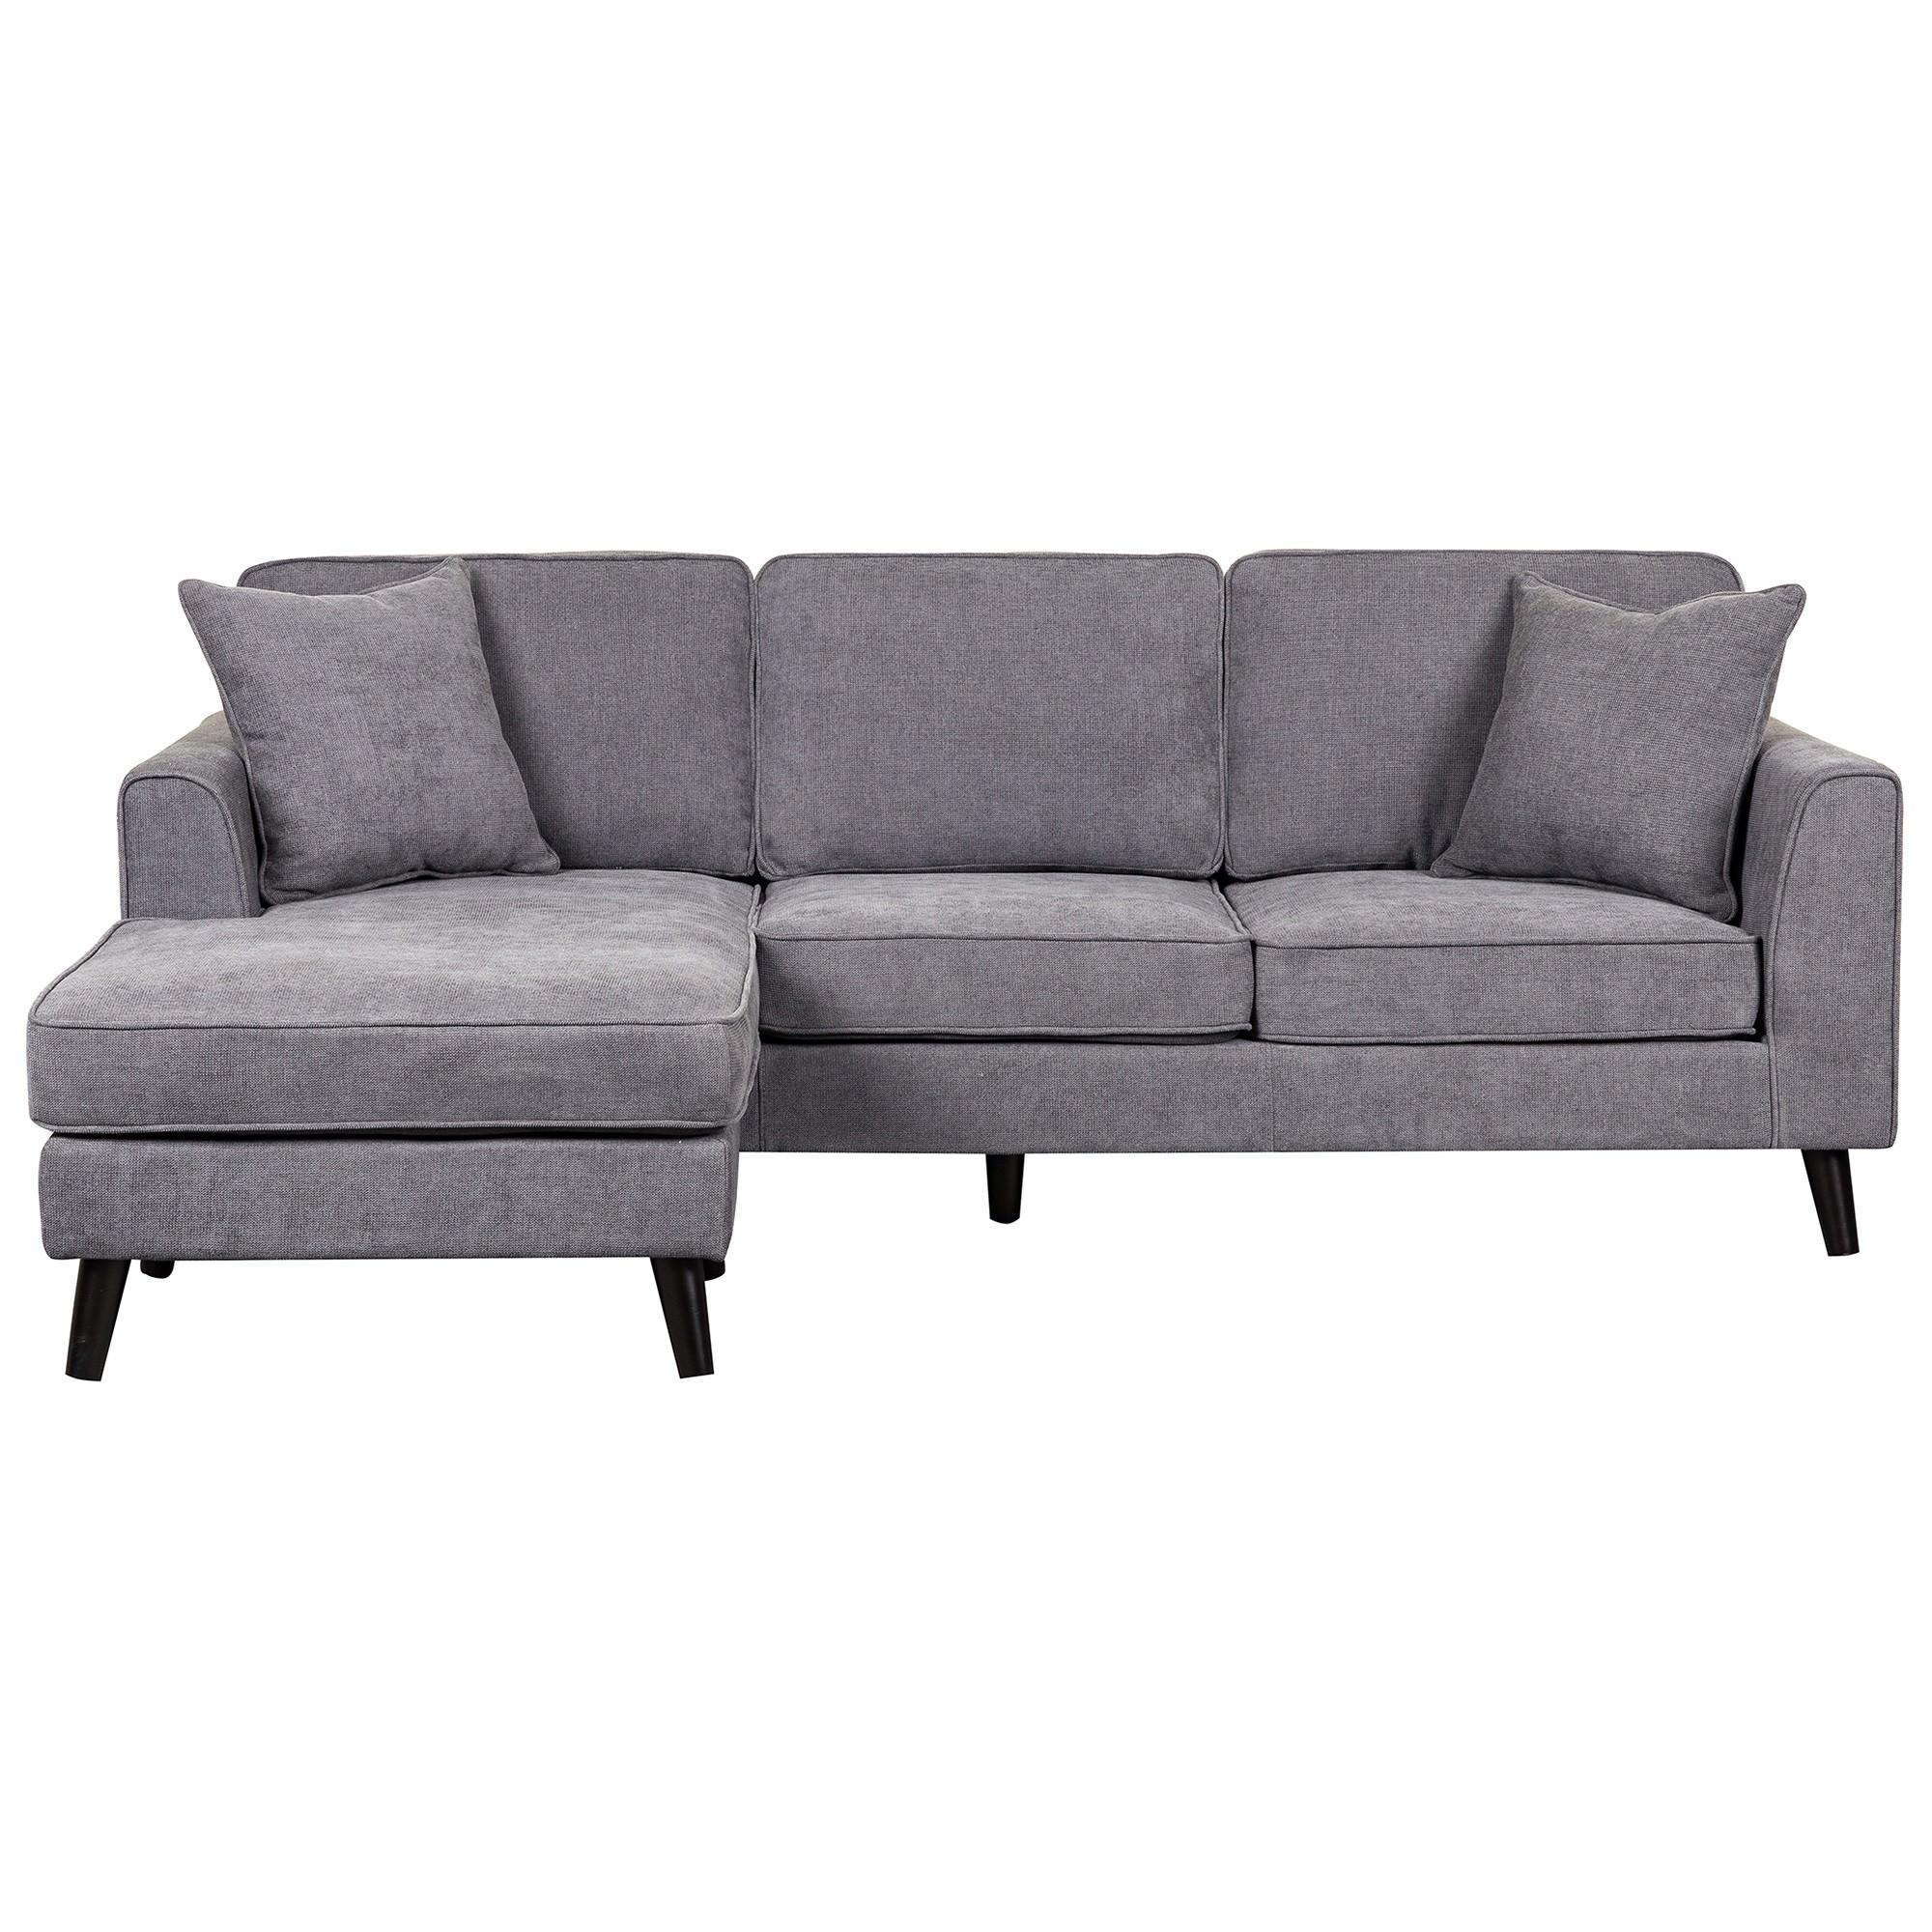 Monroe Fabric Corner Sofa 2 Seater With Reversible Chaise Dark Grey